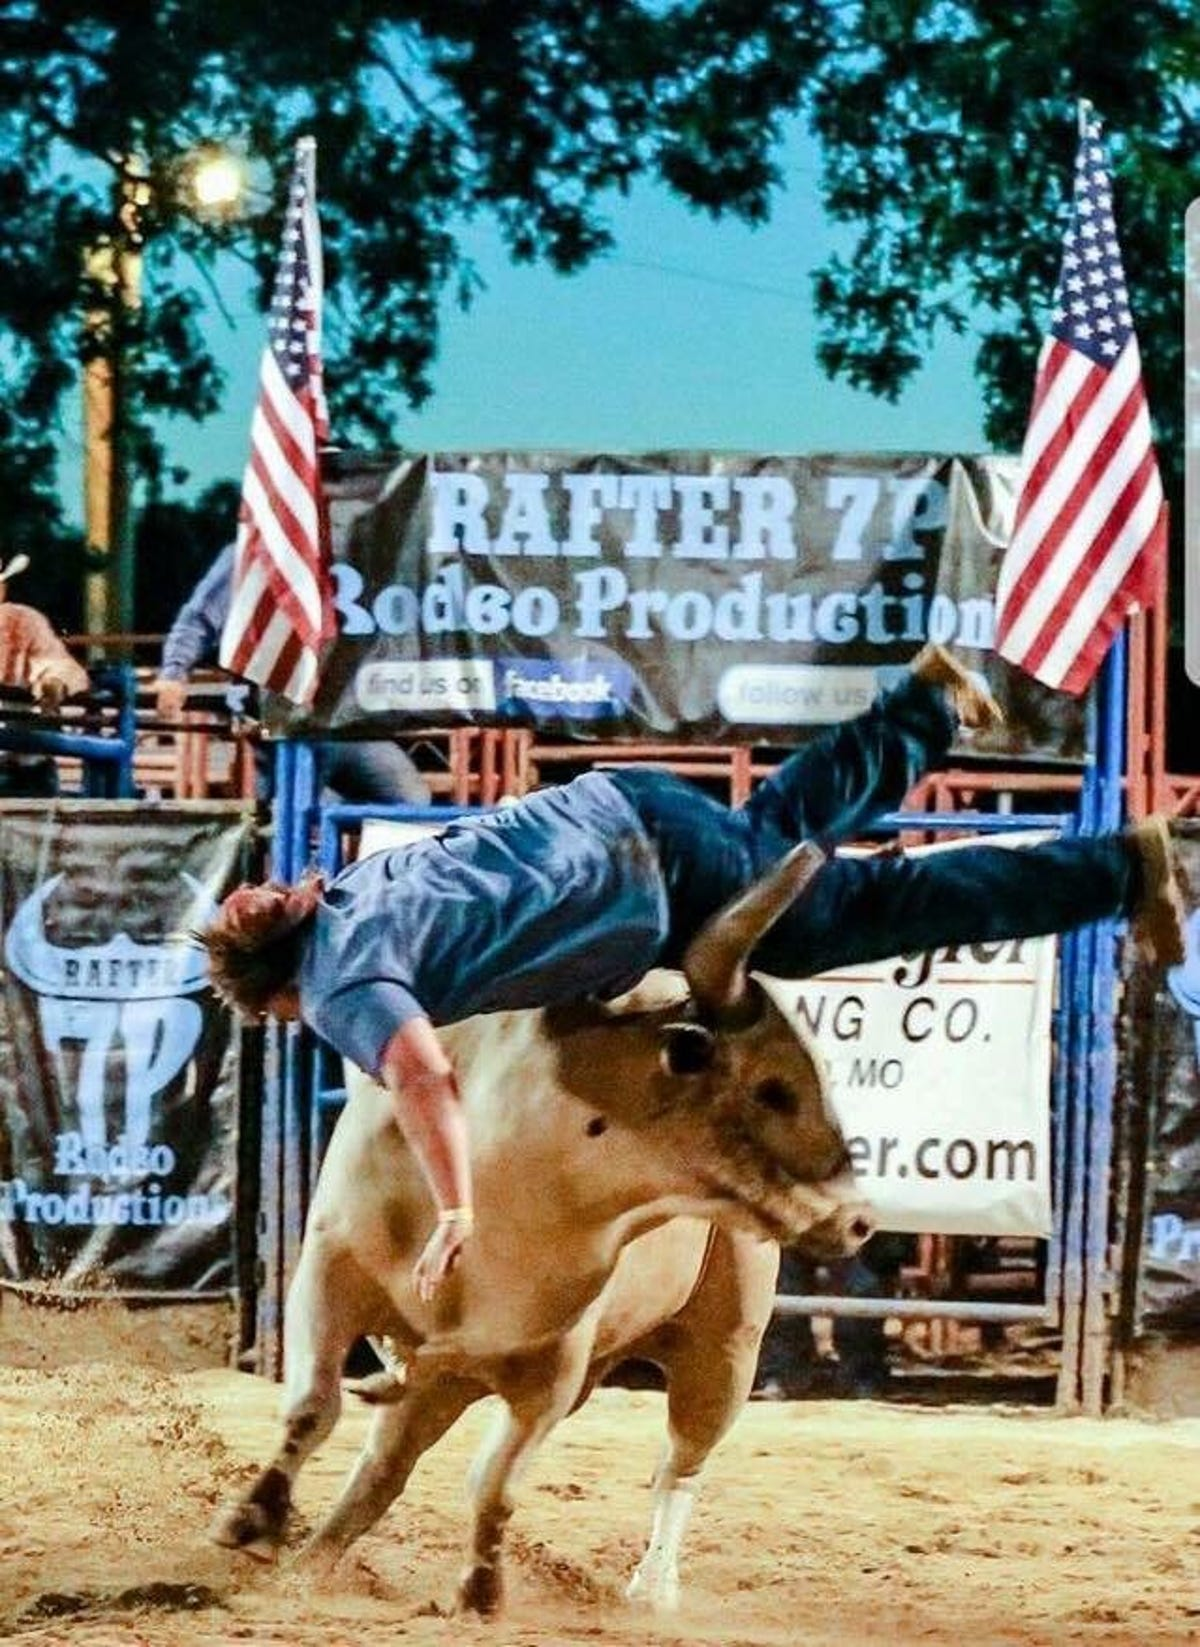 What is Cowboy Pinball? Daredevil rodeo event not for faint